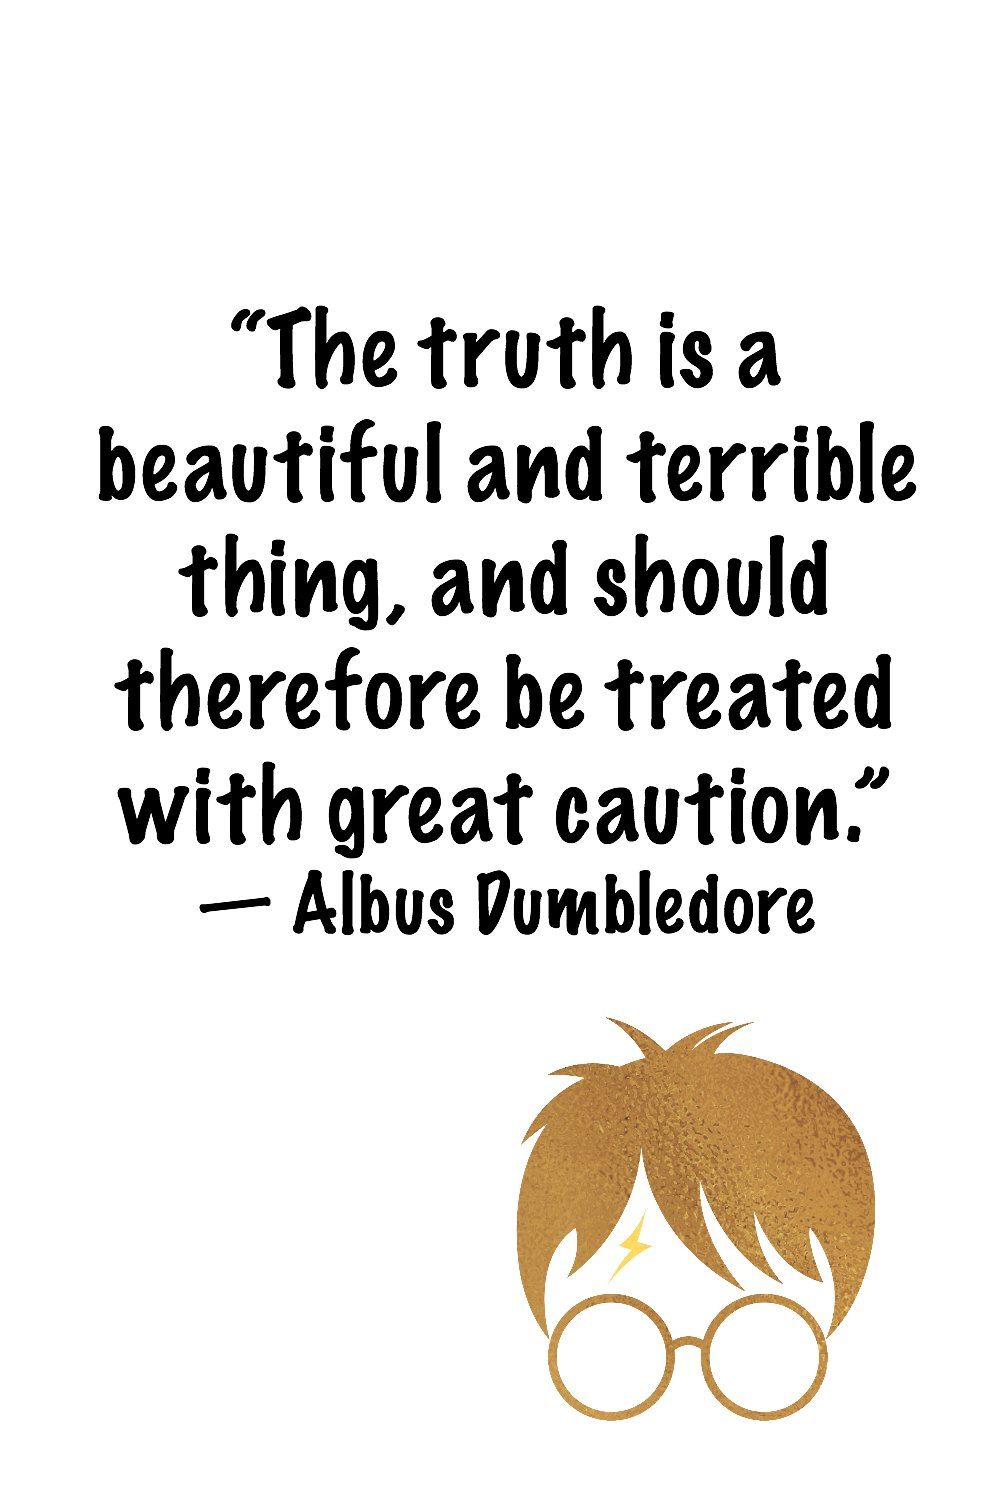 Quotes from harry potter